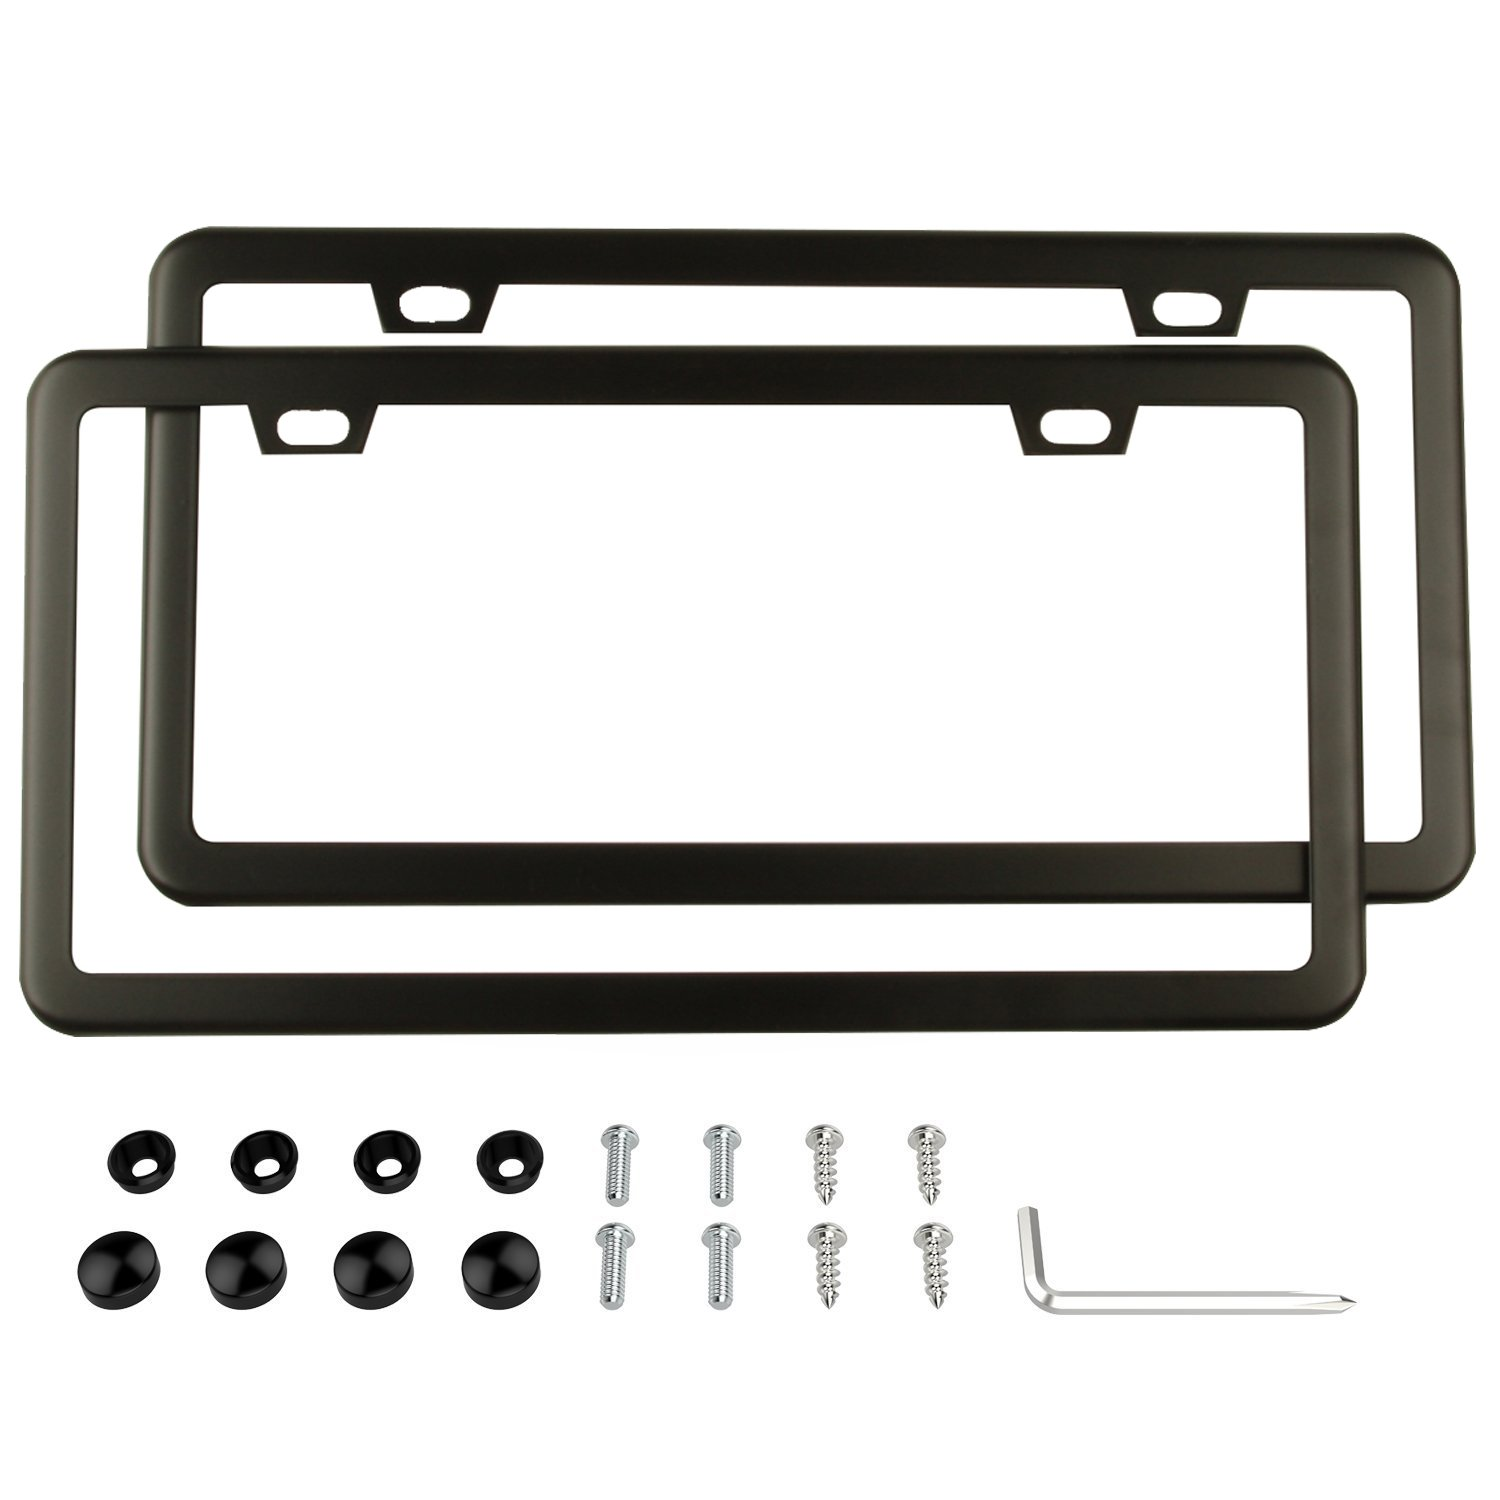 2-Hole Black Black License Plate Frames Stainless Steel Car Licence Plate Covers Slim Design 2 PCS with Bolts Washer Caps for US Standard